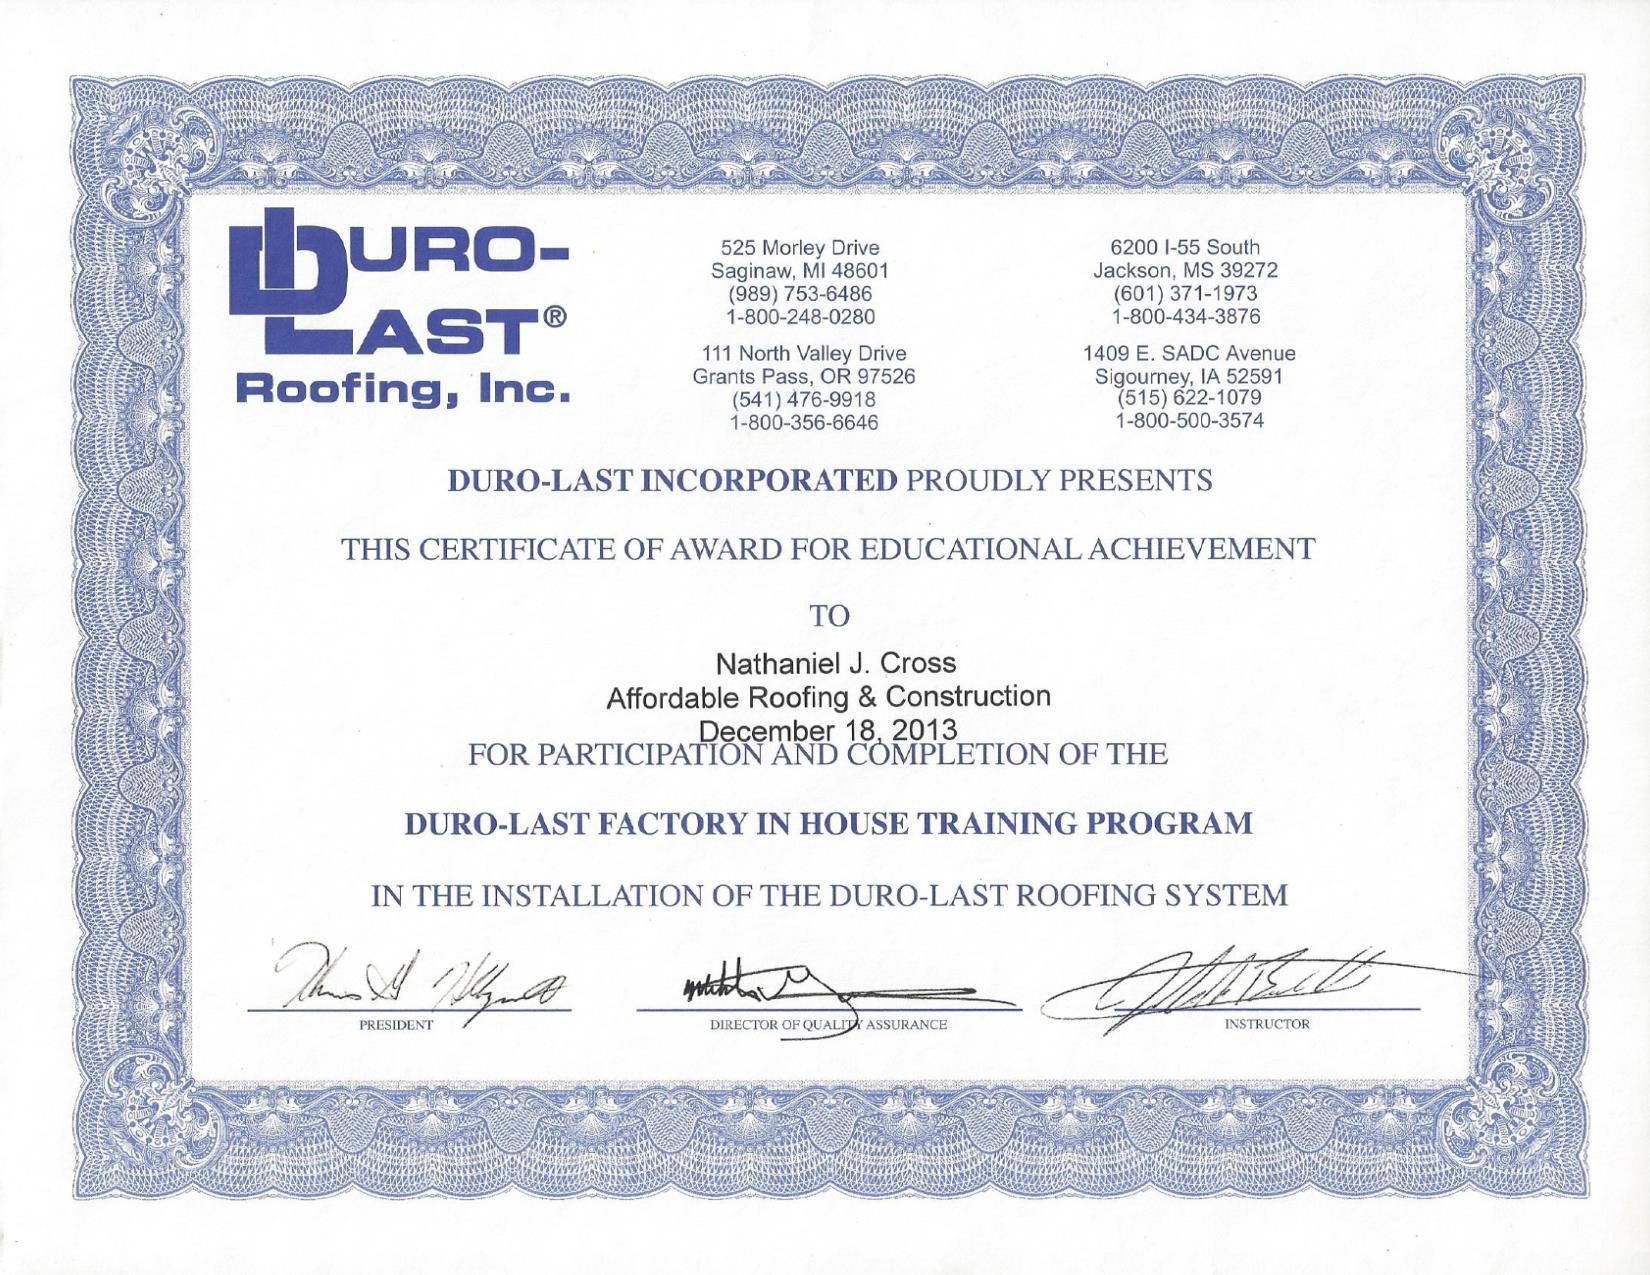 Certifications affordable roofing construction duro last certified for pvc metal installation xflitez Gallery